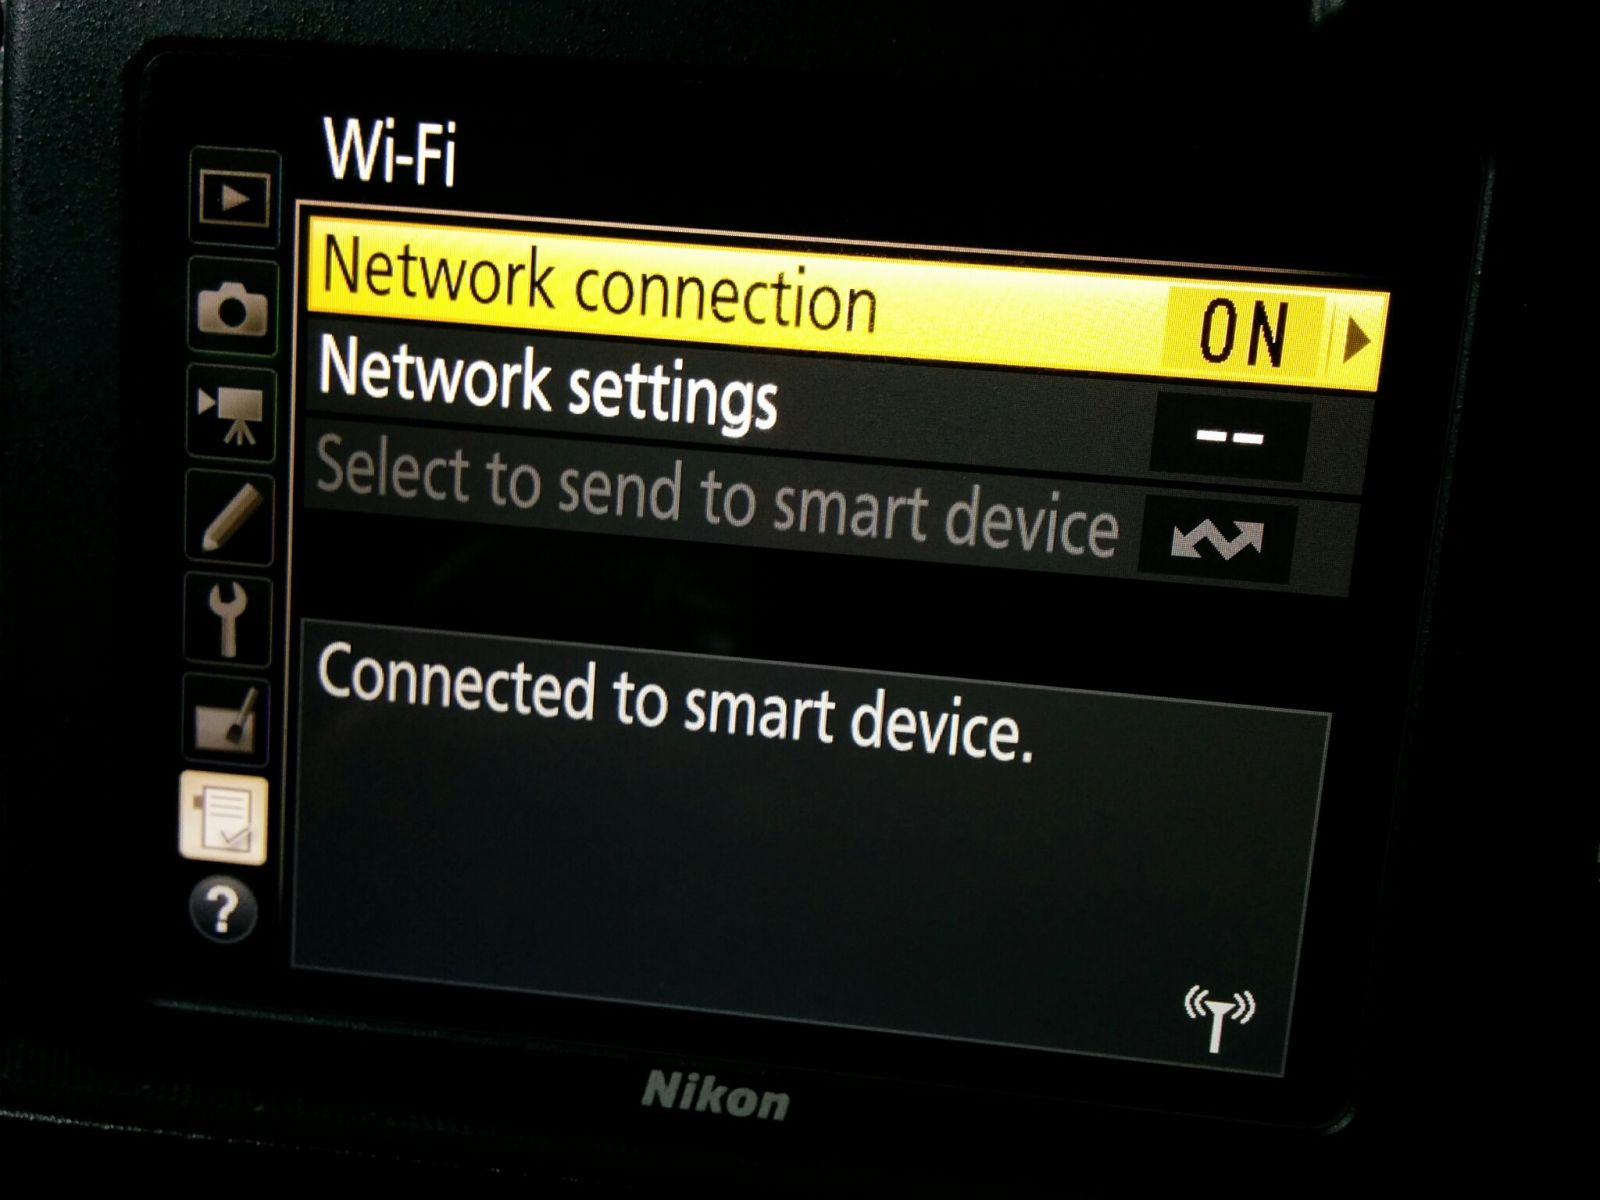 qdslrdashboard-nikon-remote-control-app-android-connected-to-smart-device